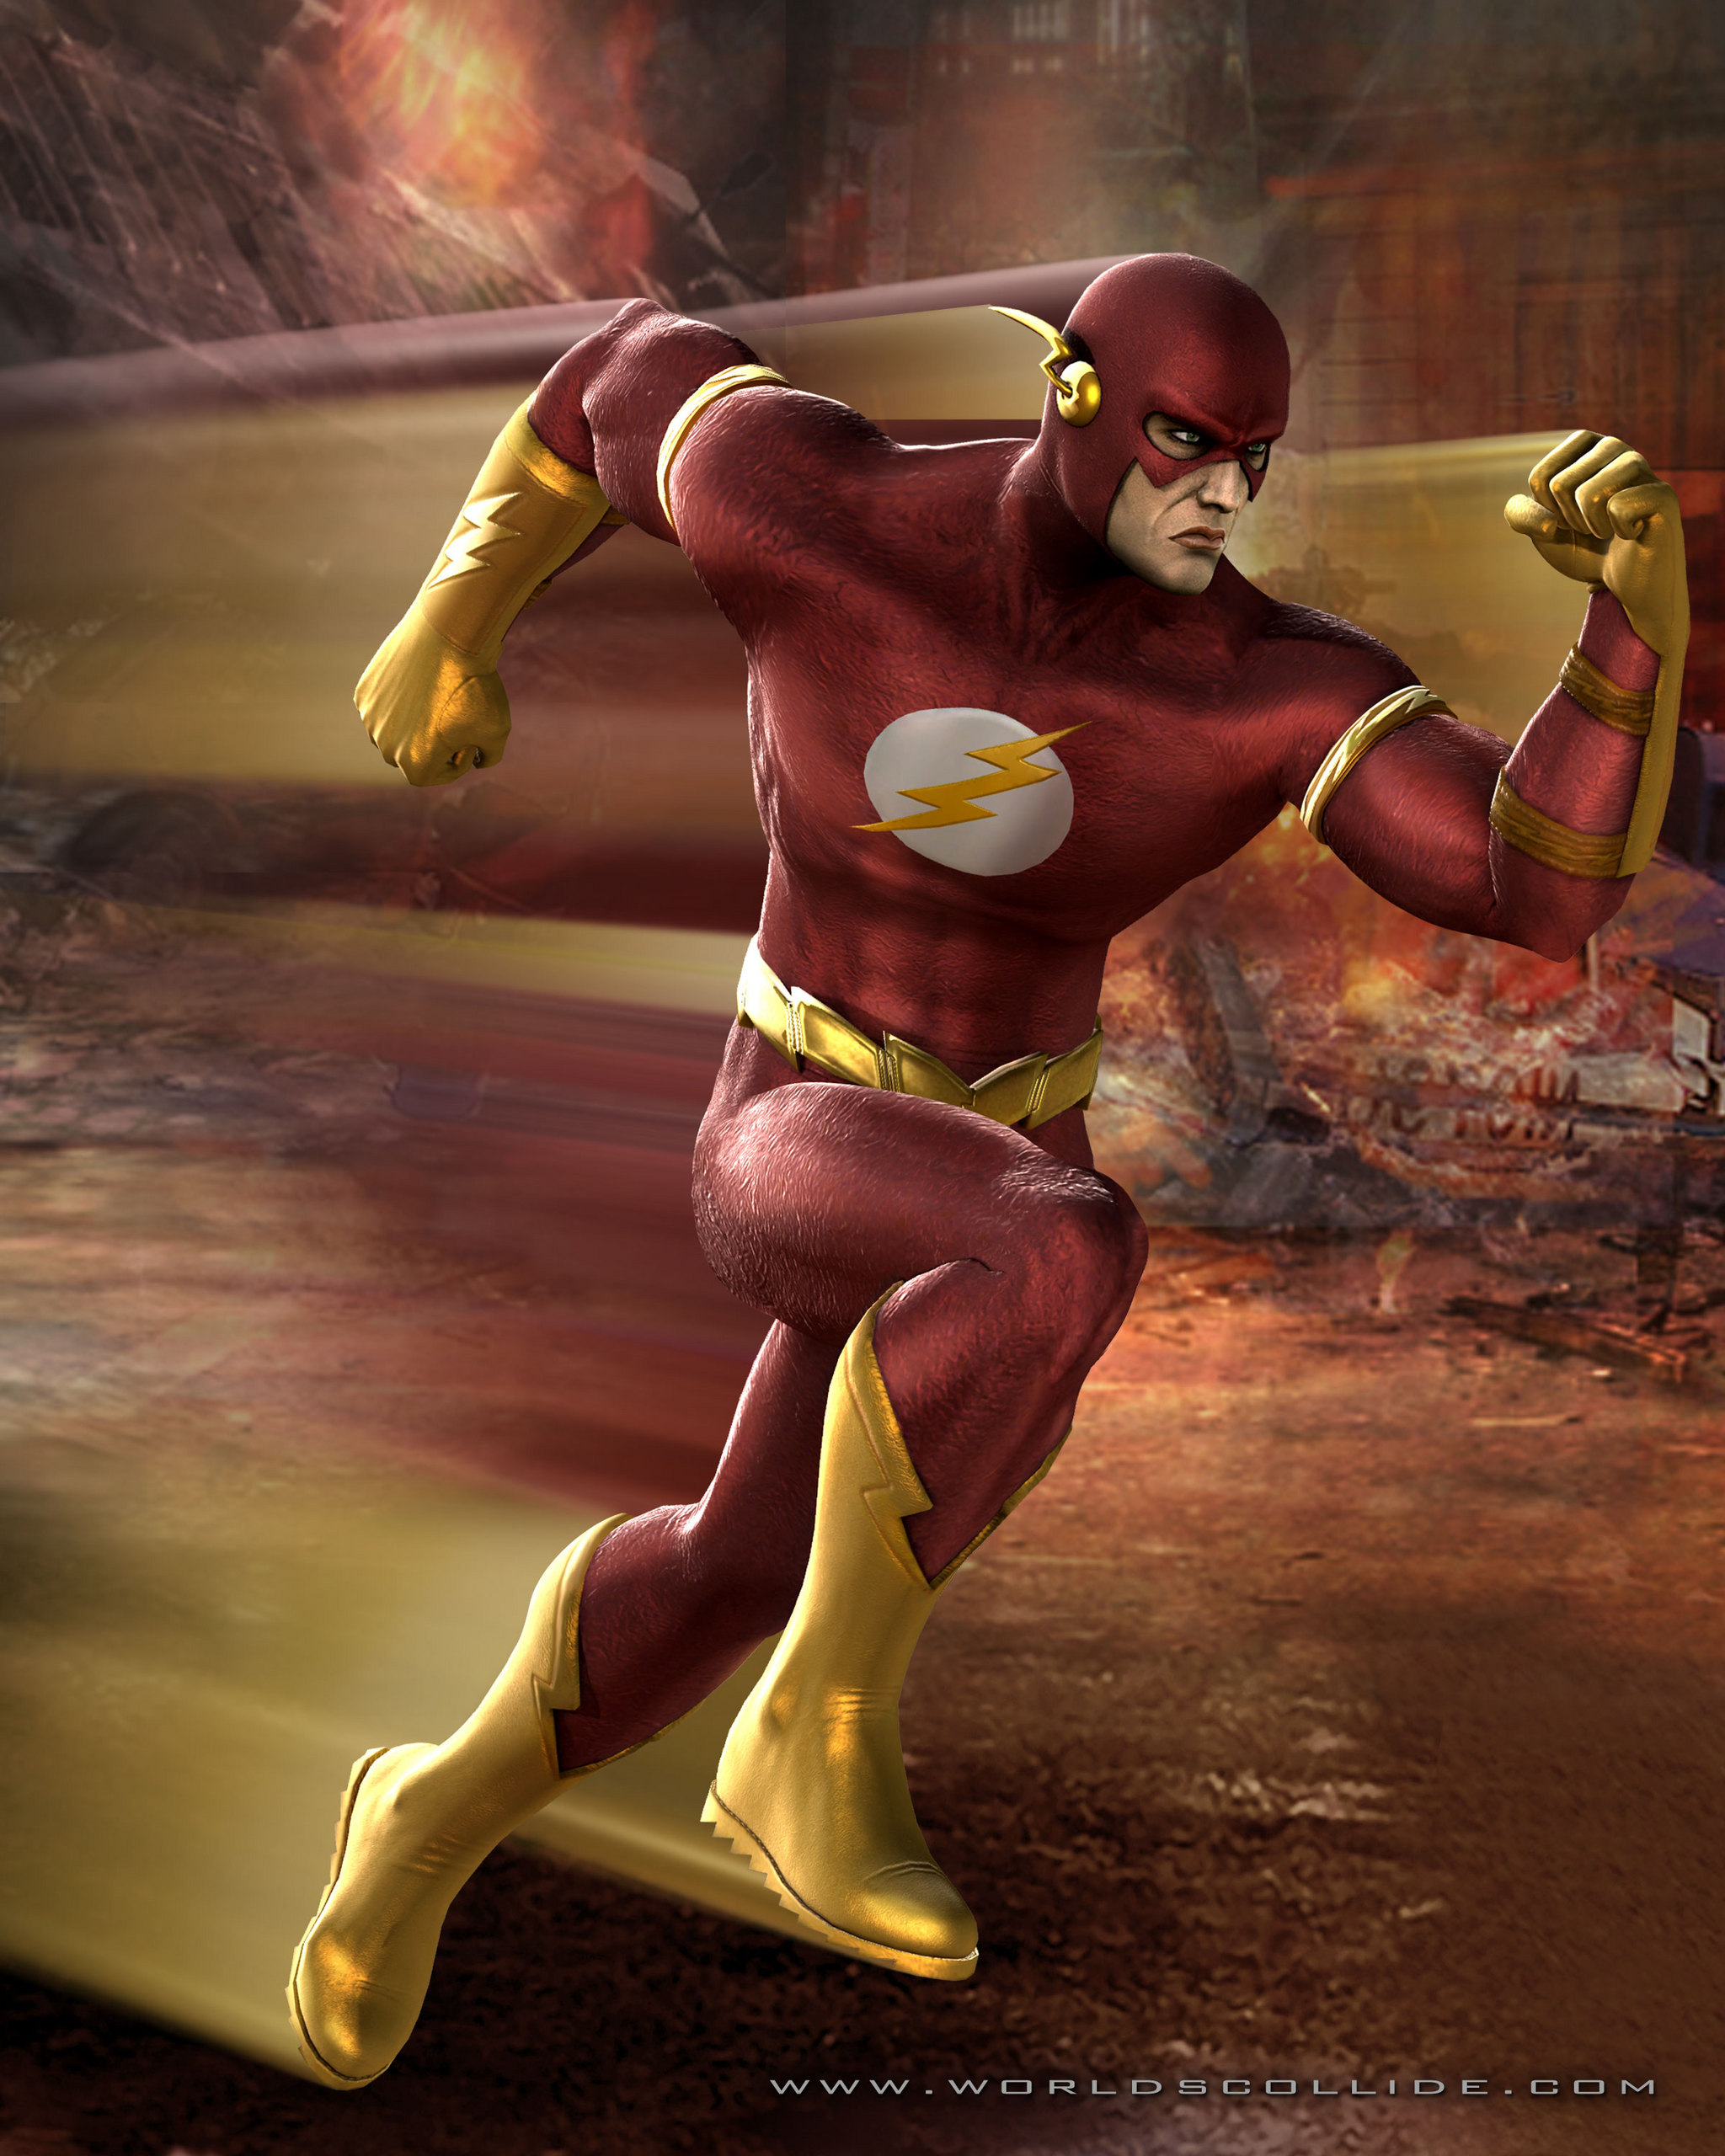 Dc univers vs marvel flash